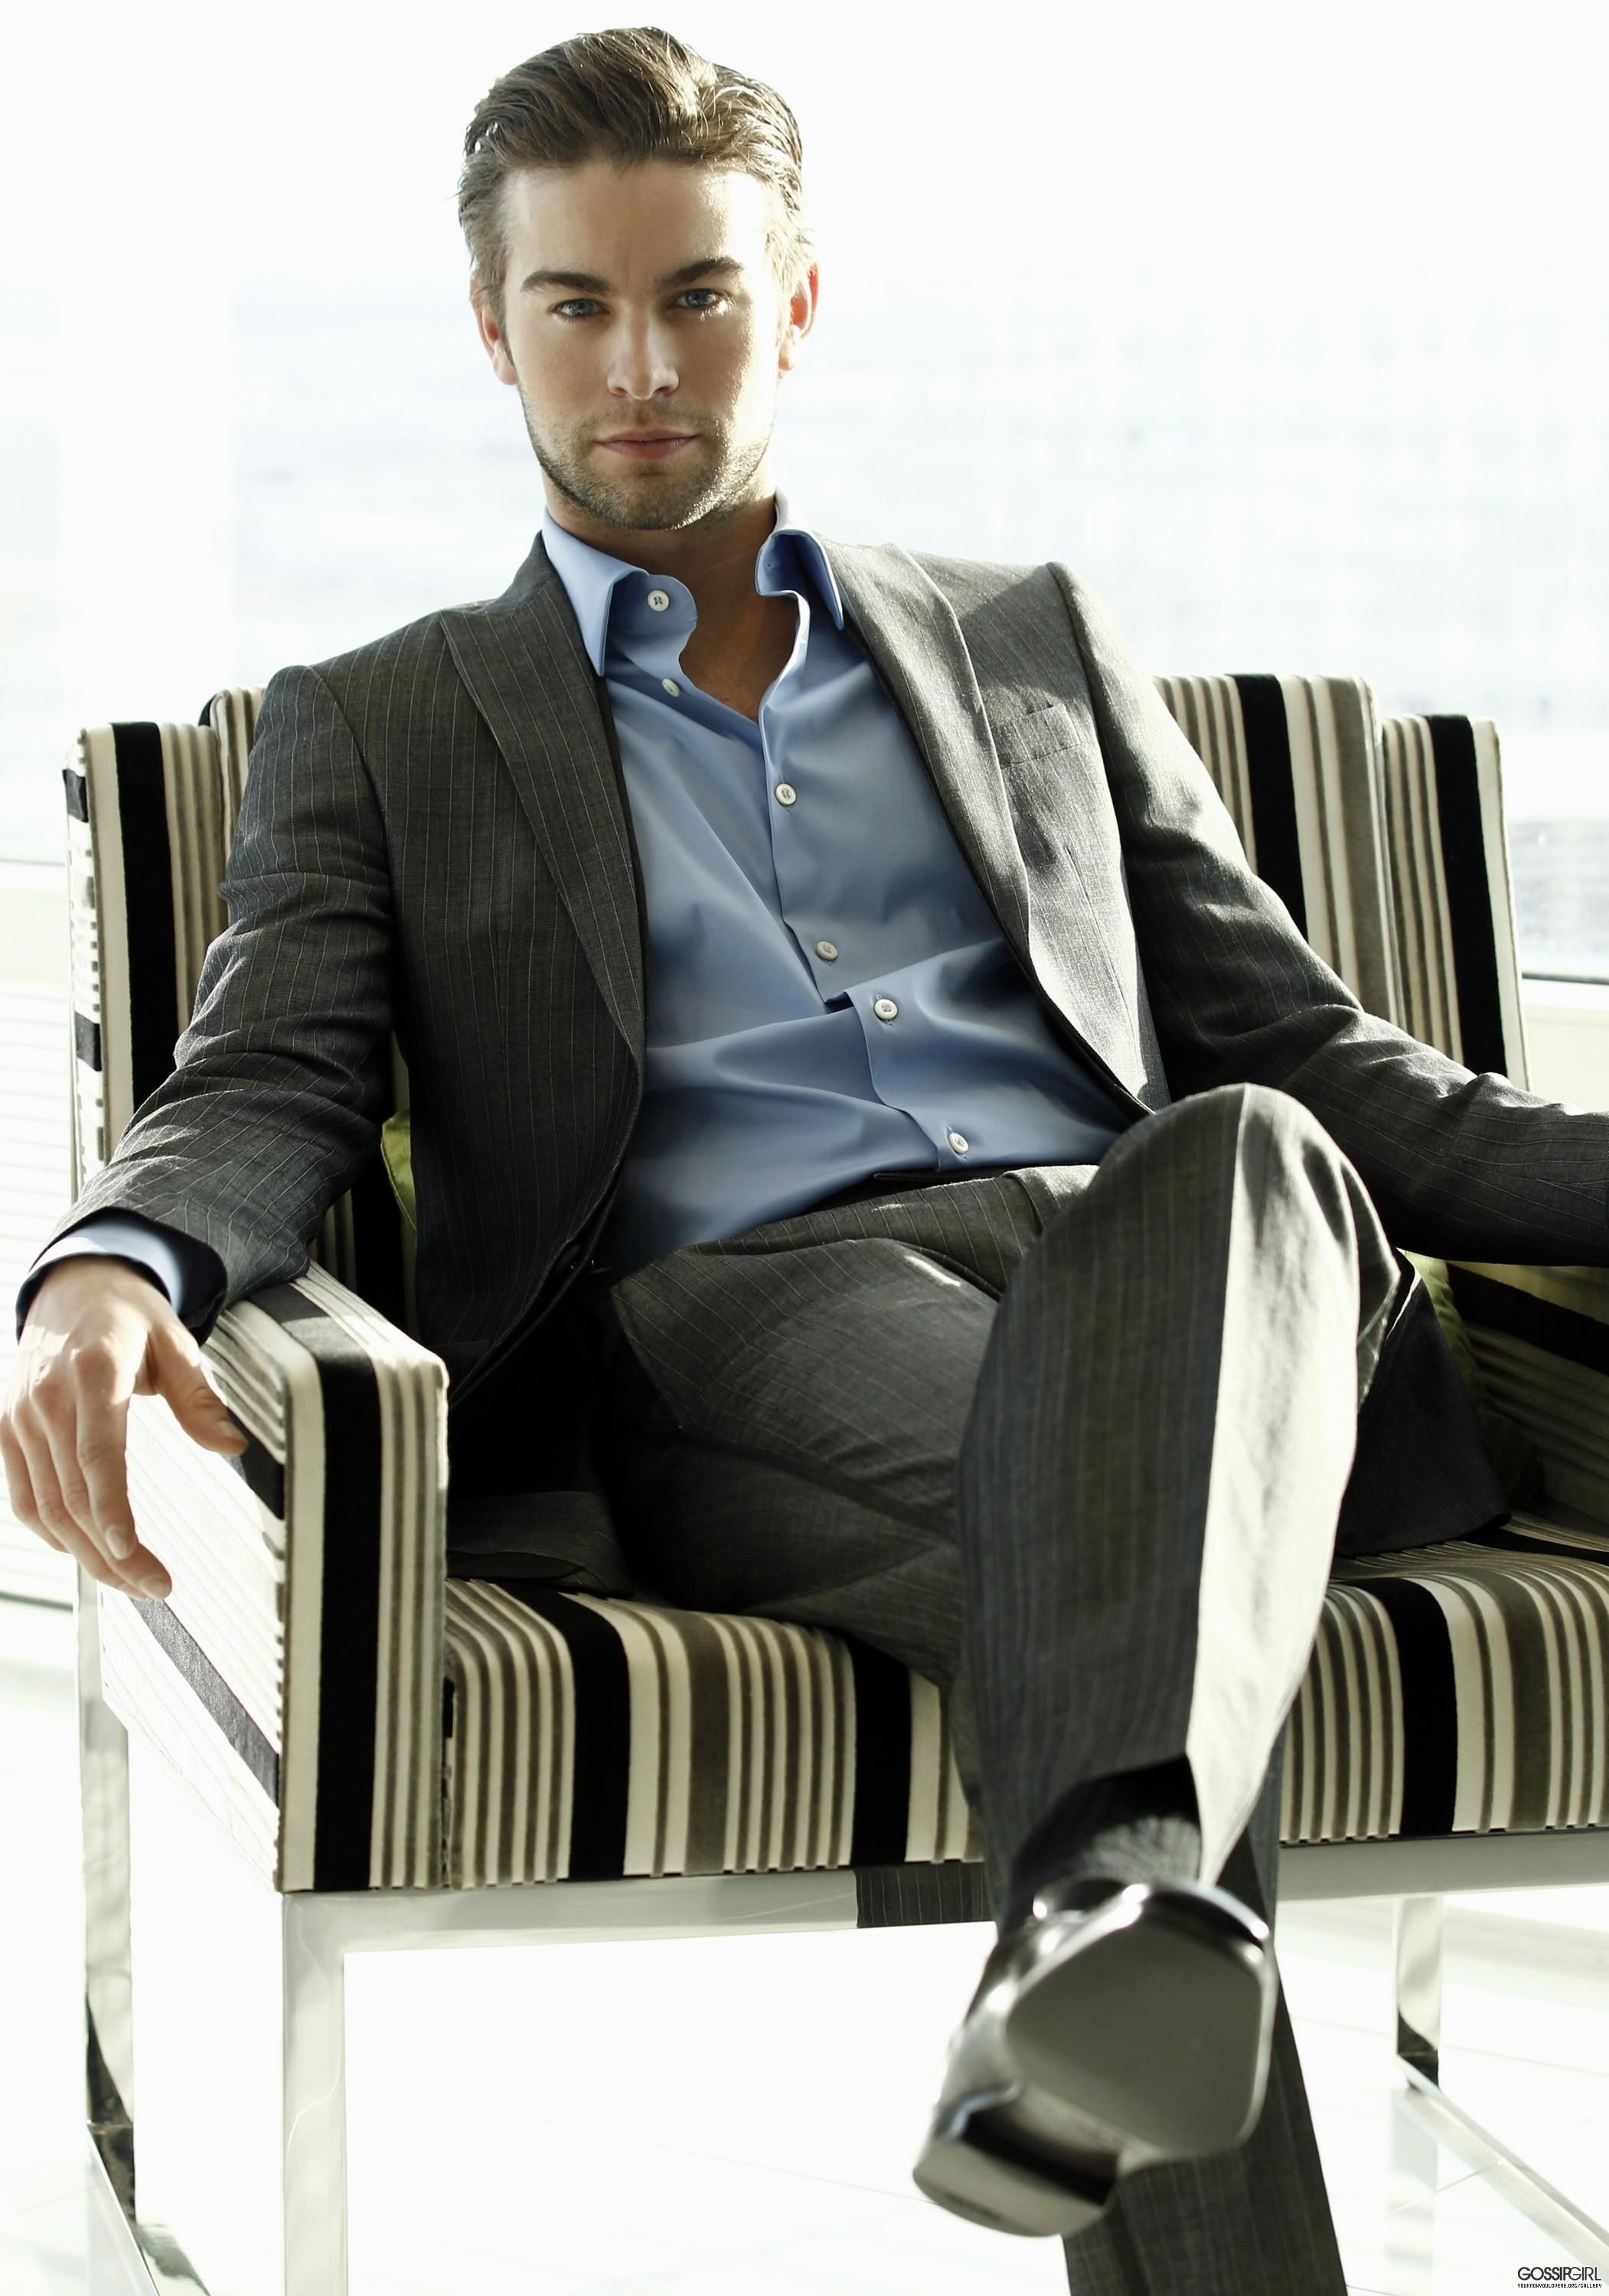 Res: 2102x3000, Photo of Chace Crawford #306729. Upload date: 2010-11-19. There are 182  more pics in the Chace Crawford photo gallery.